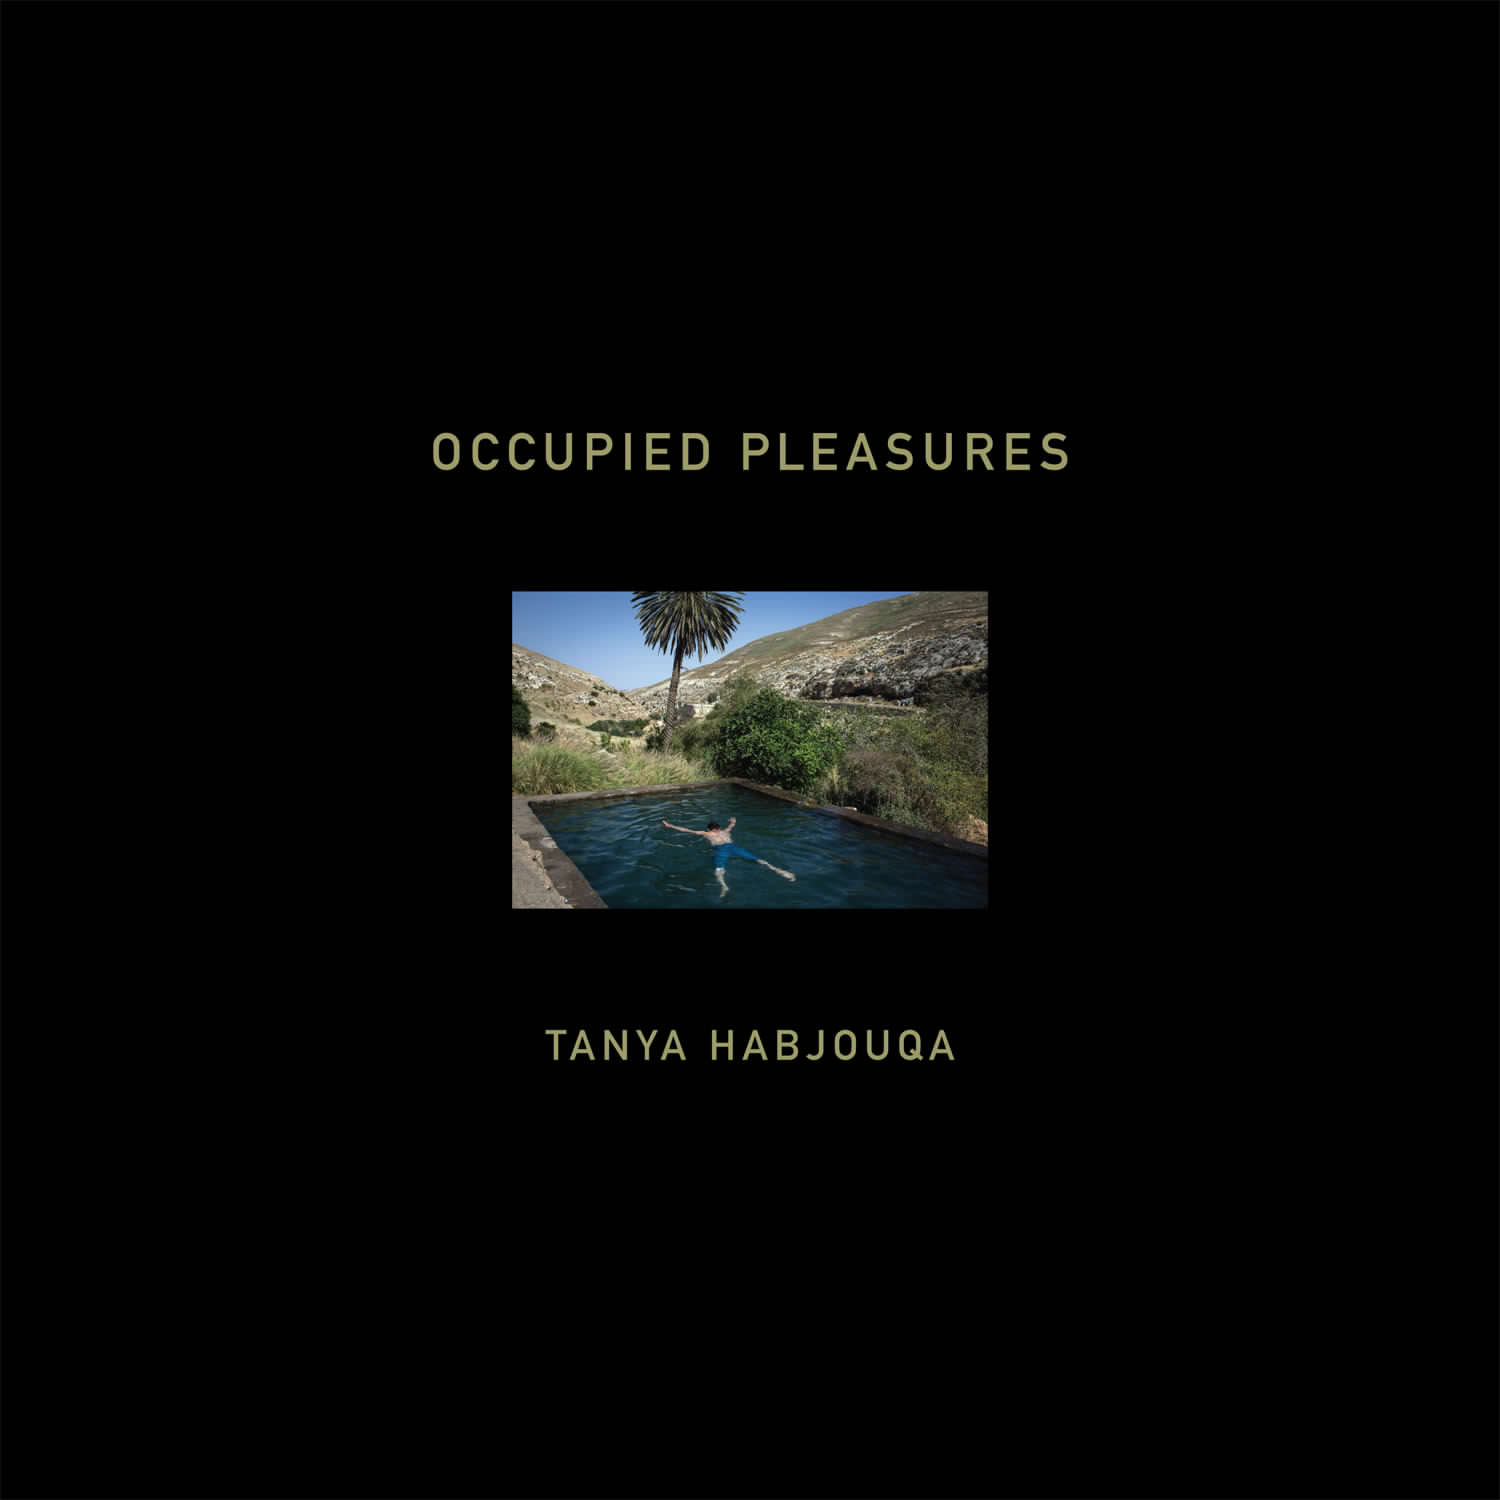 Occupied Pleasures    Tanya Habjouqa FotoEvidence Press, 2015